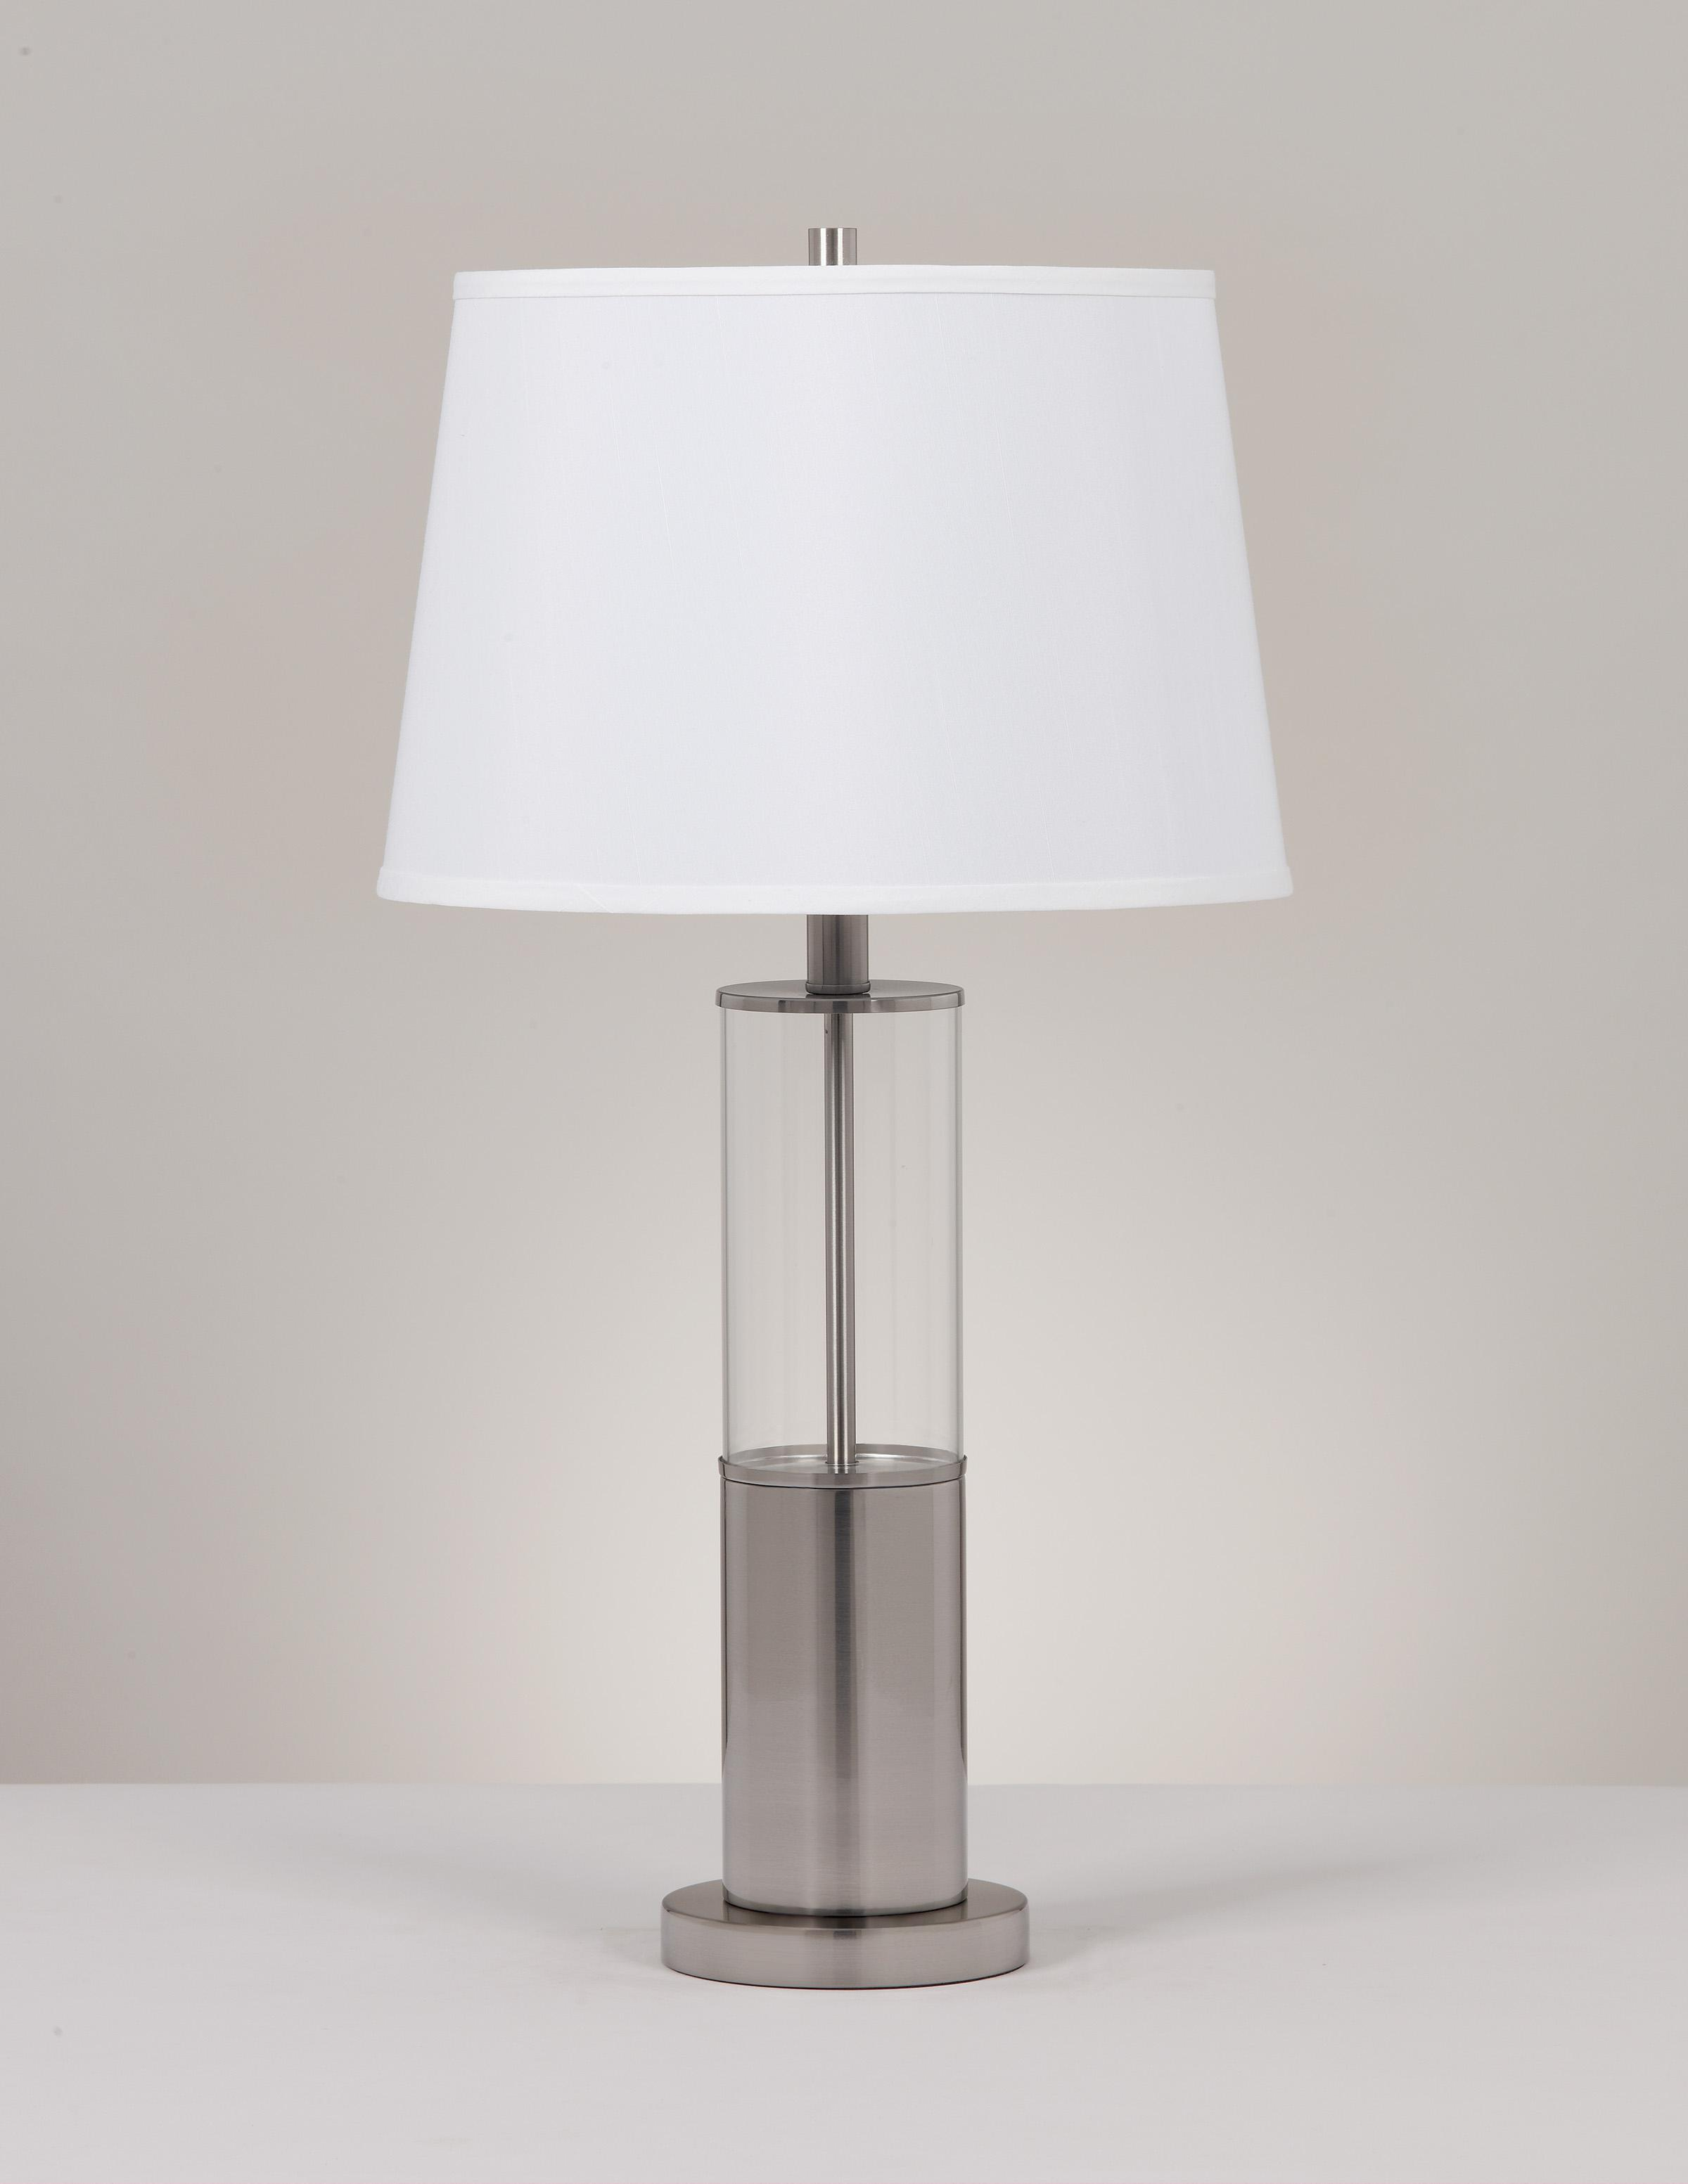 Signature Design by Ashley Lamps - Metro Modern Set of 2 Norma Table Lamps - Item Number: L431354